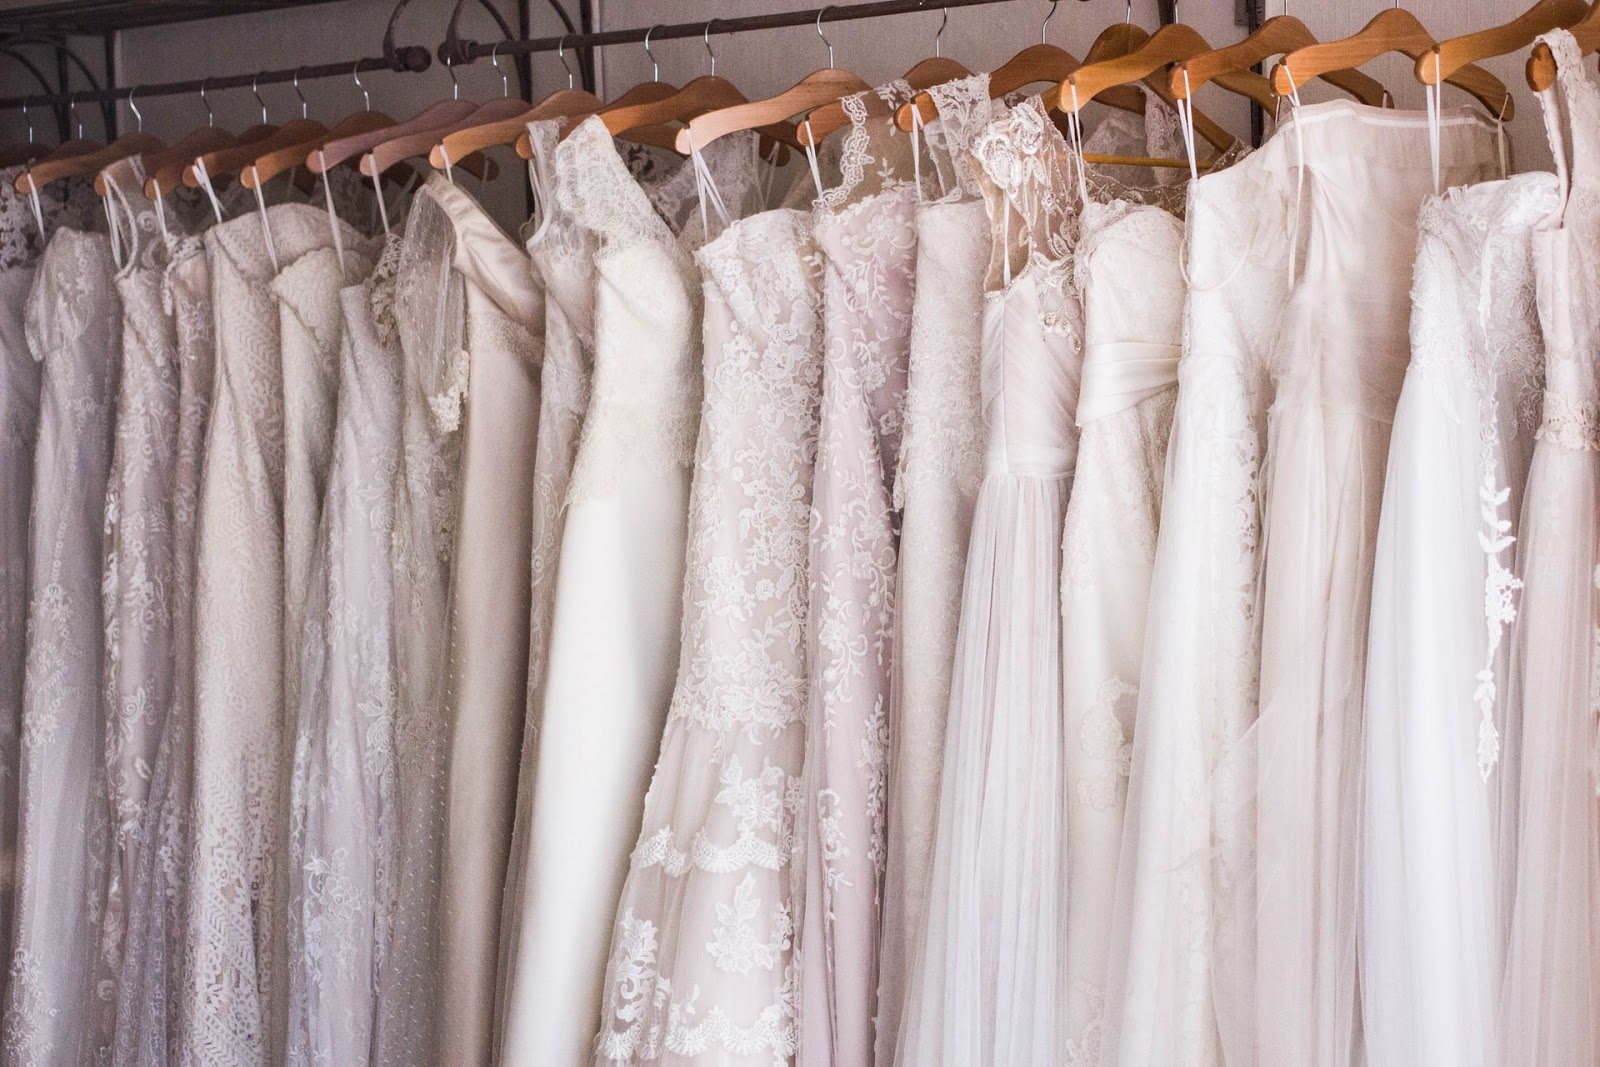 Row of white wedding dresses hanging on a rail